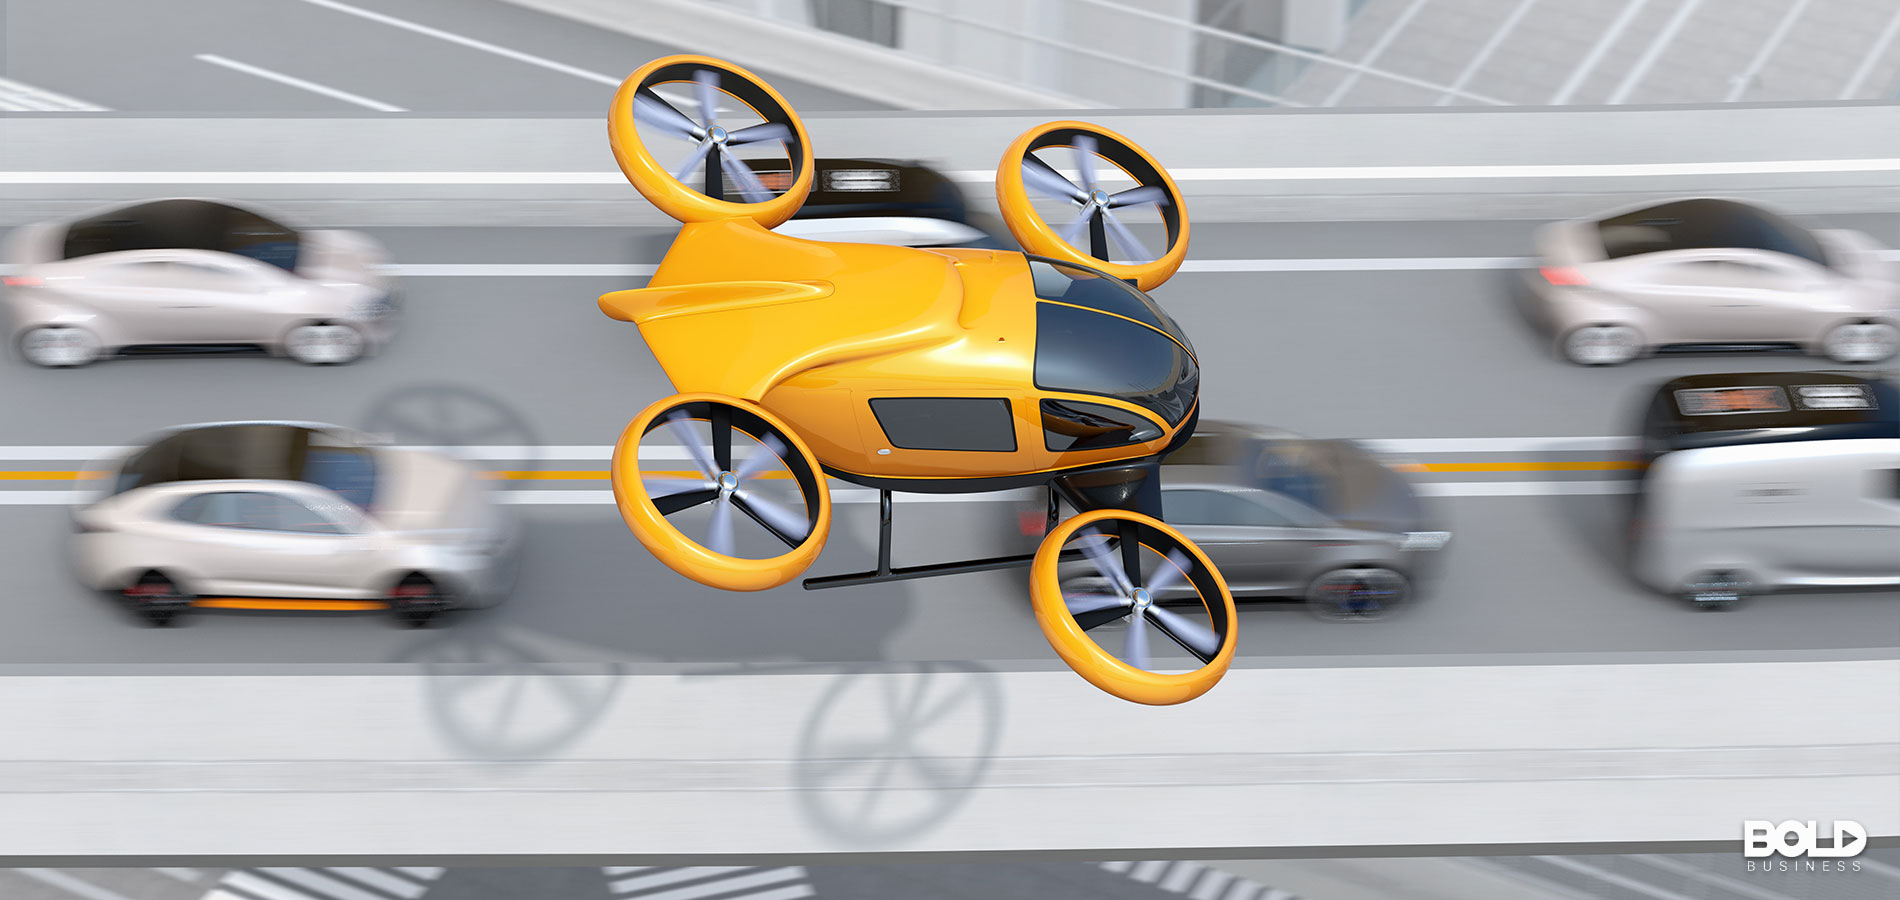 A yellow flying taxi skipping over the traffic jam